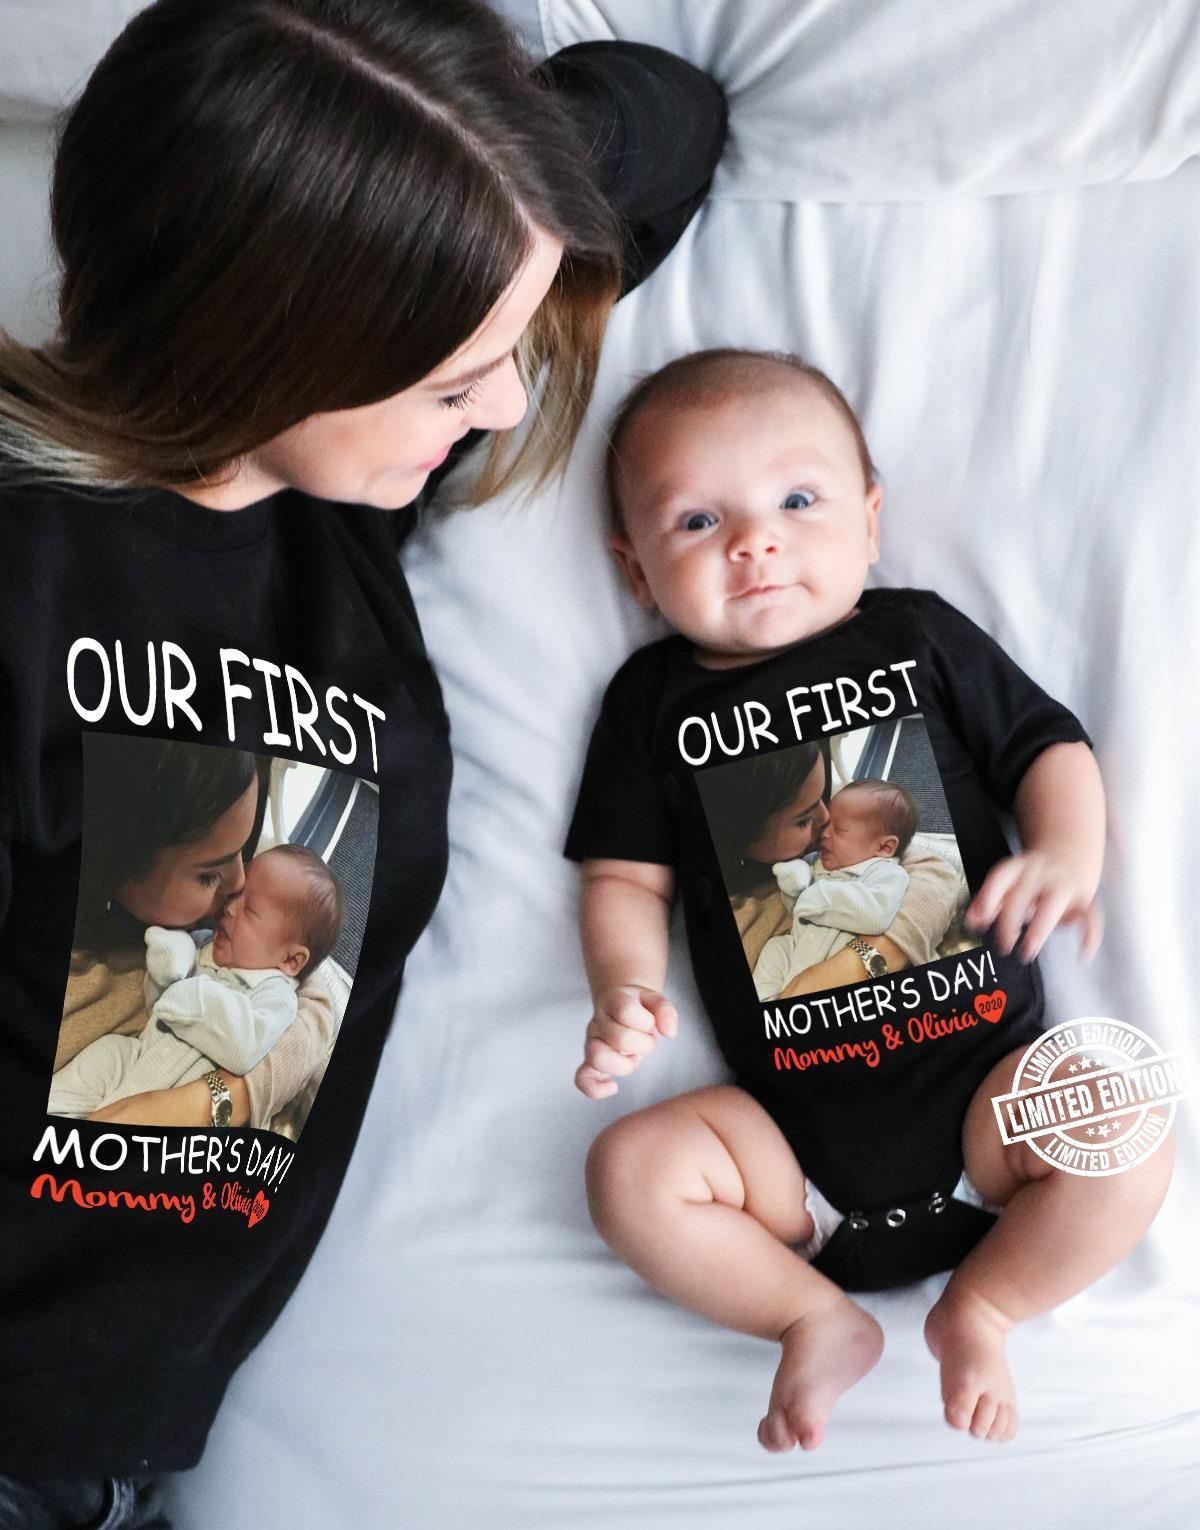 Our first mother's day mommy and olivia shirt